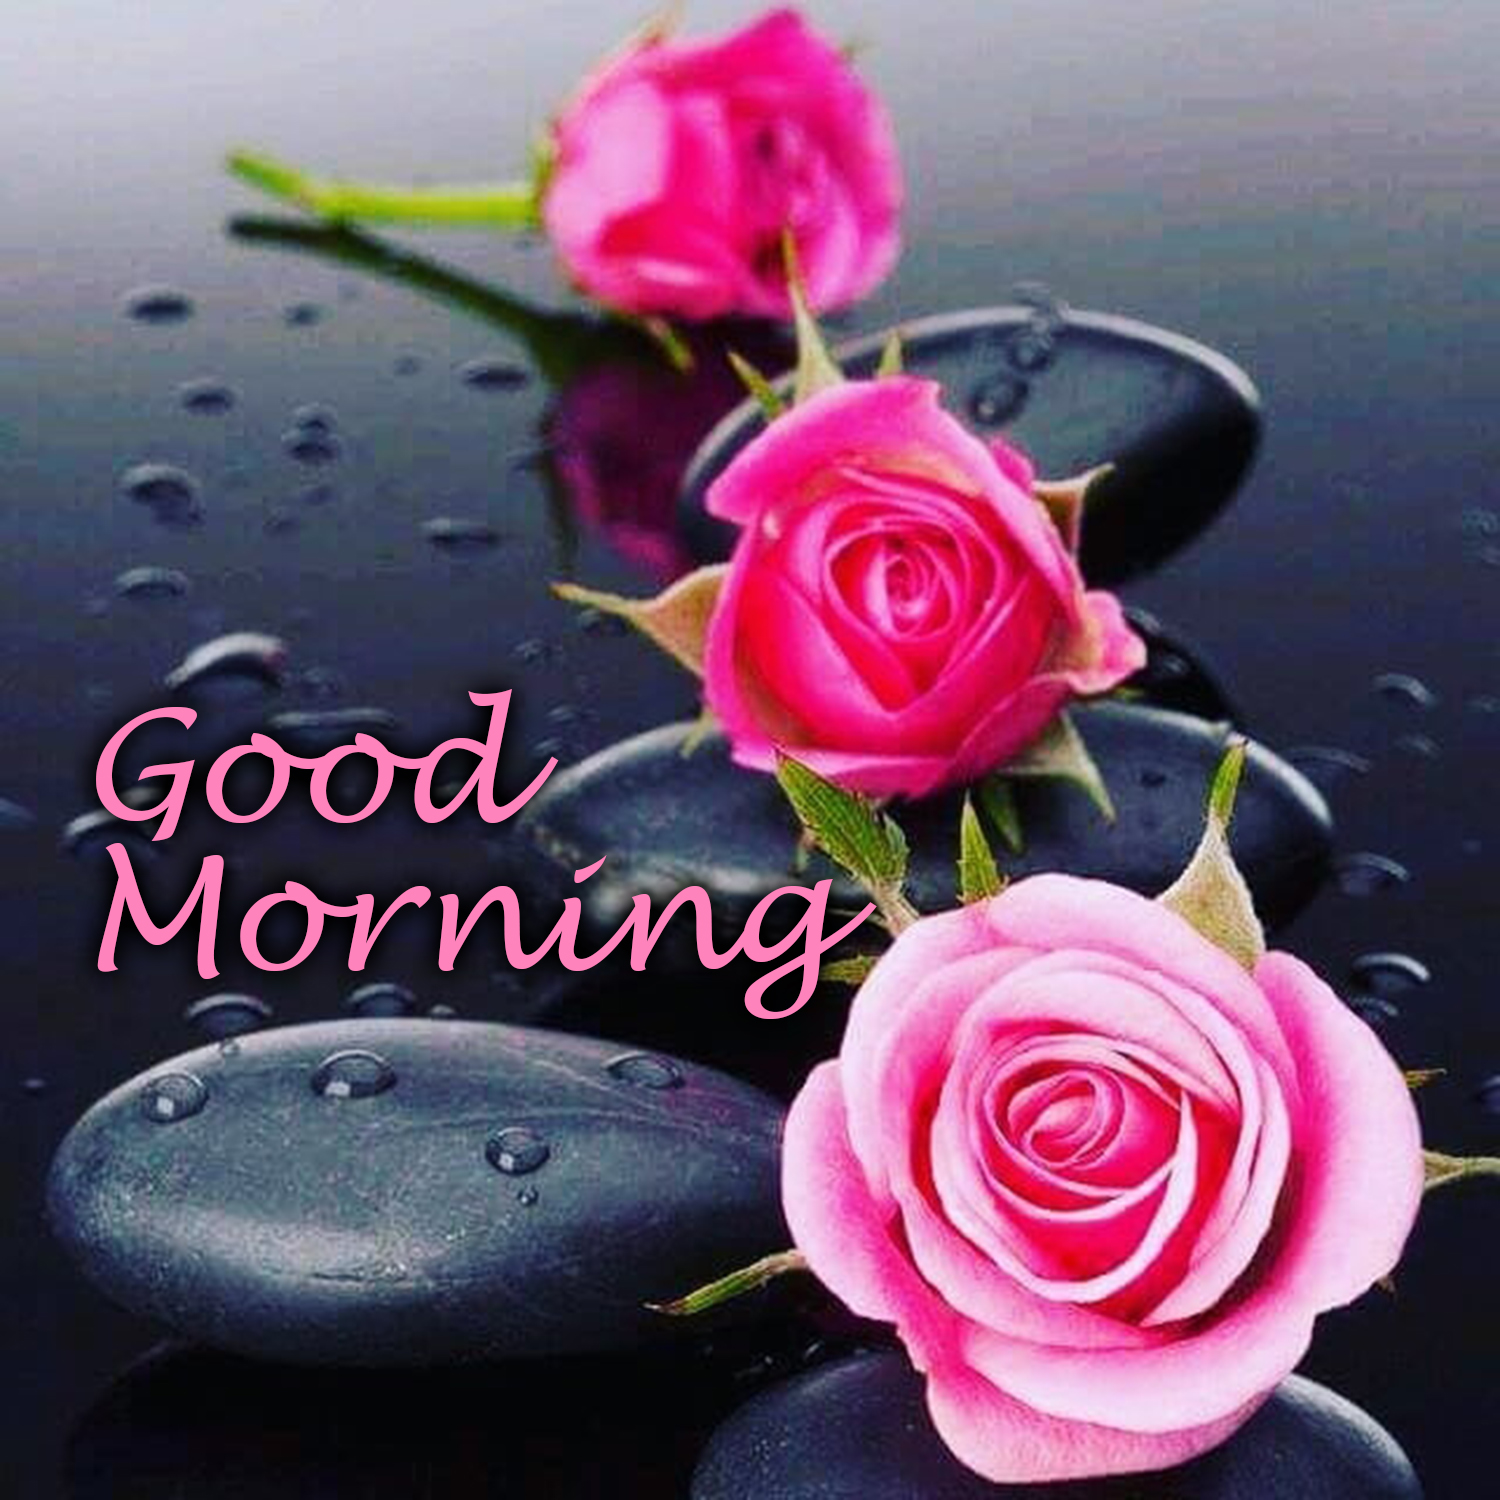 Download The Images Of The Beautiful Flowers Good Morning Images Good Morning Images Quotes Wishes Messages Greetings Ecards